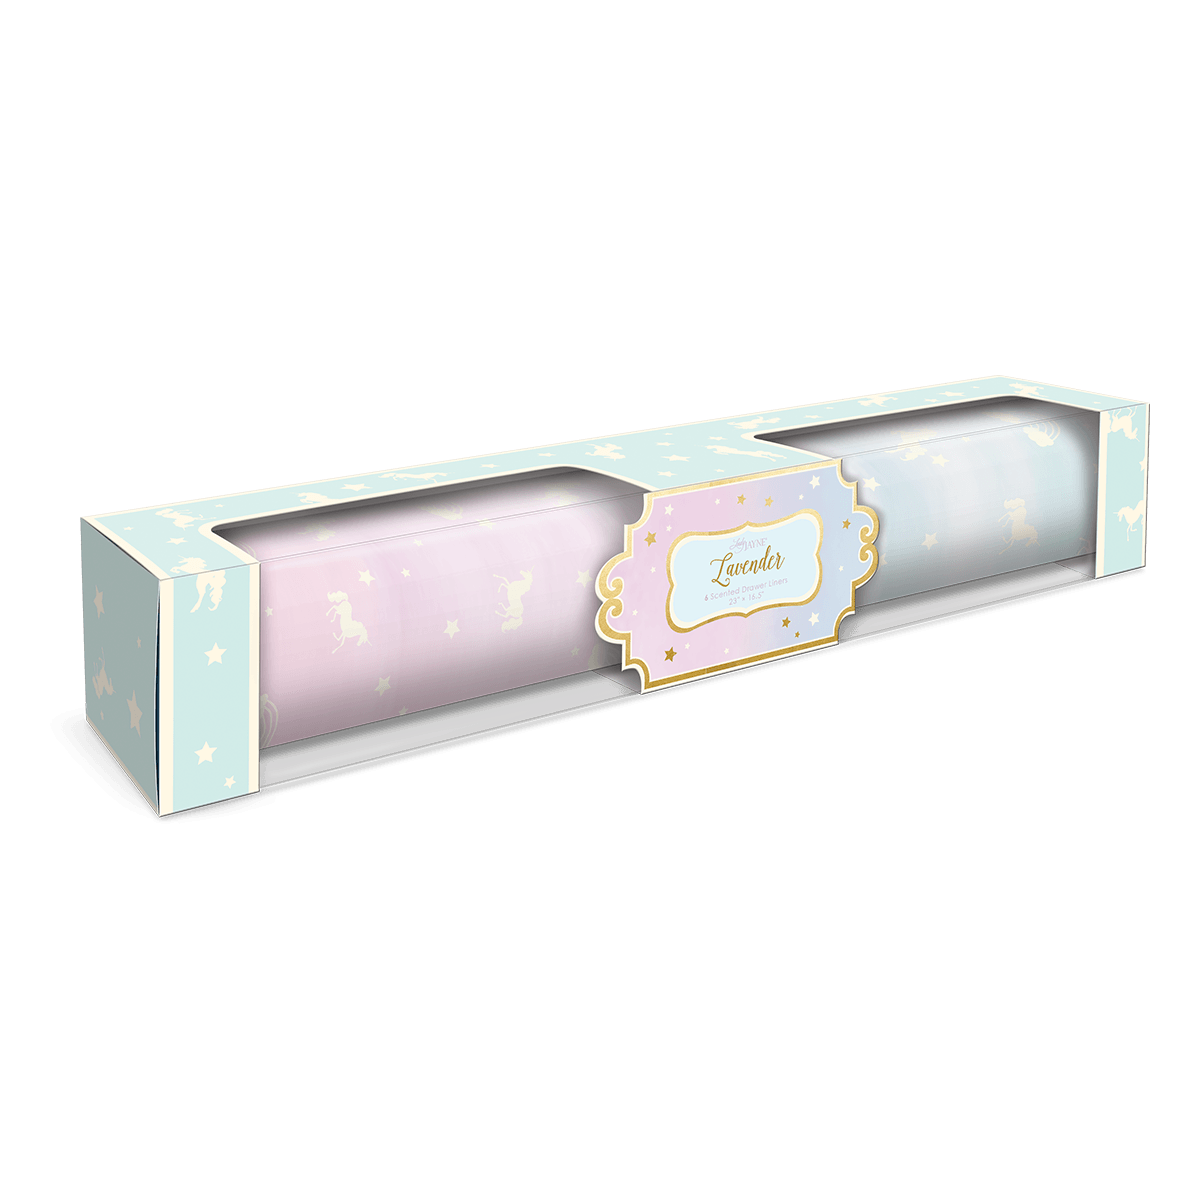 jaxnblvd clementine black image and products white liner floral drawer